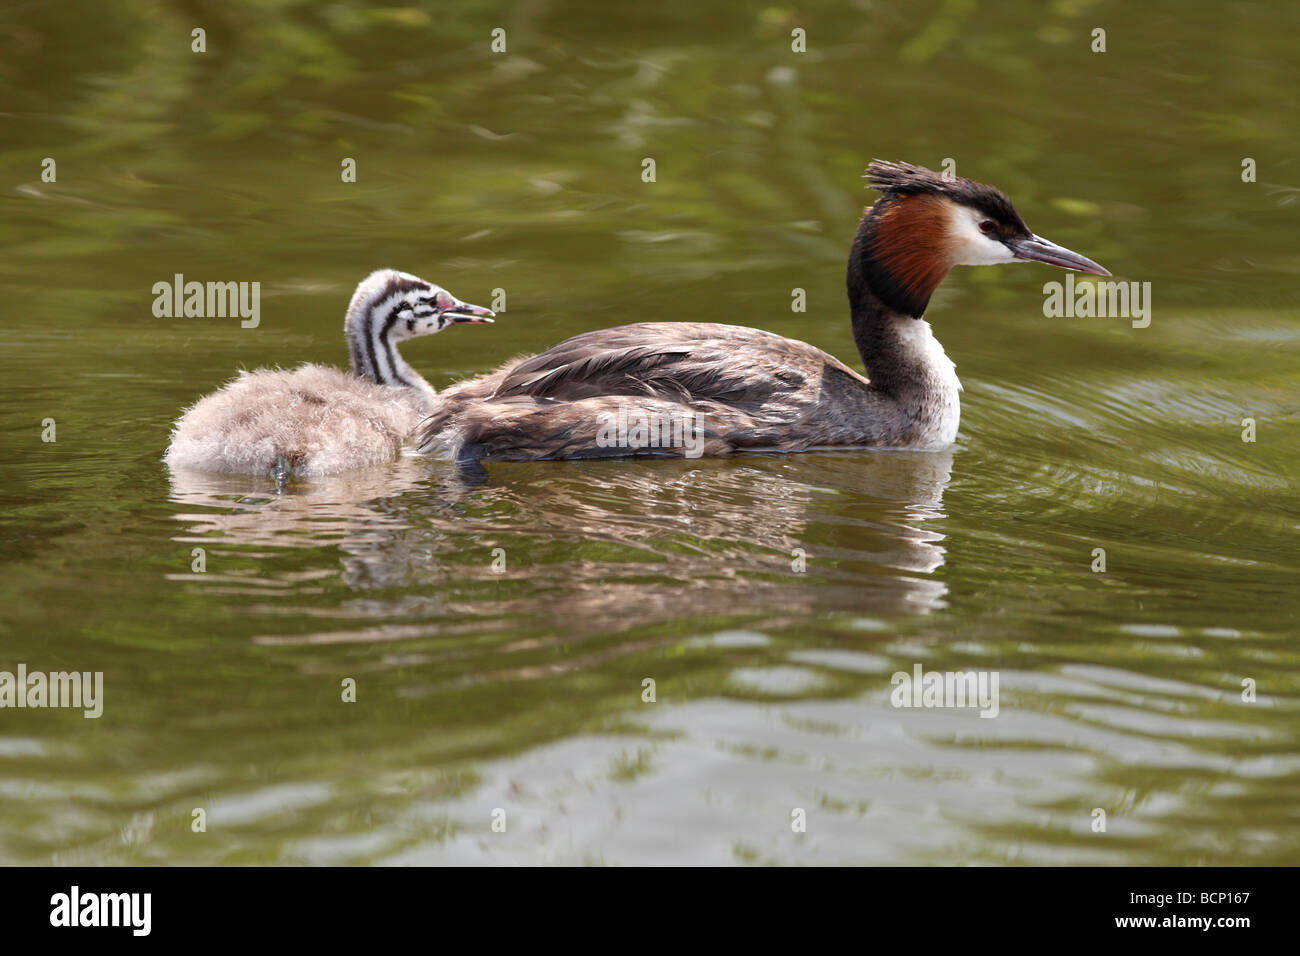 Great crested grebe Podiceps cristatus swimming with youngster - Stock Image